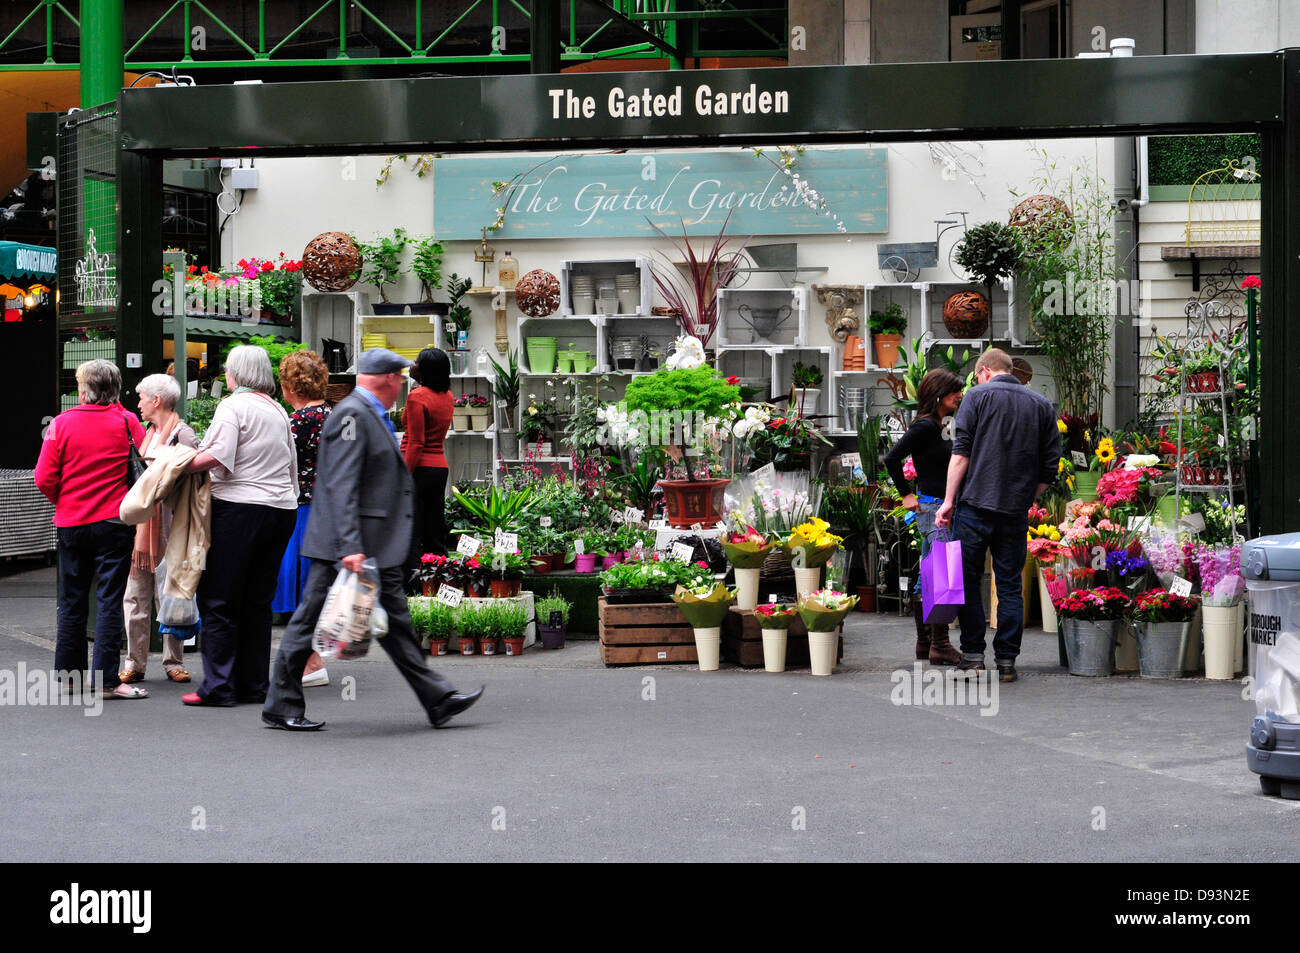 A general view of a flower shop in Borough market, London, UK - Stock Image